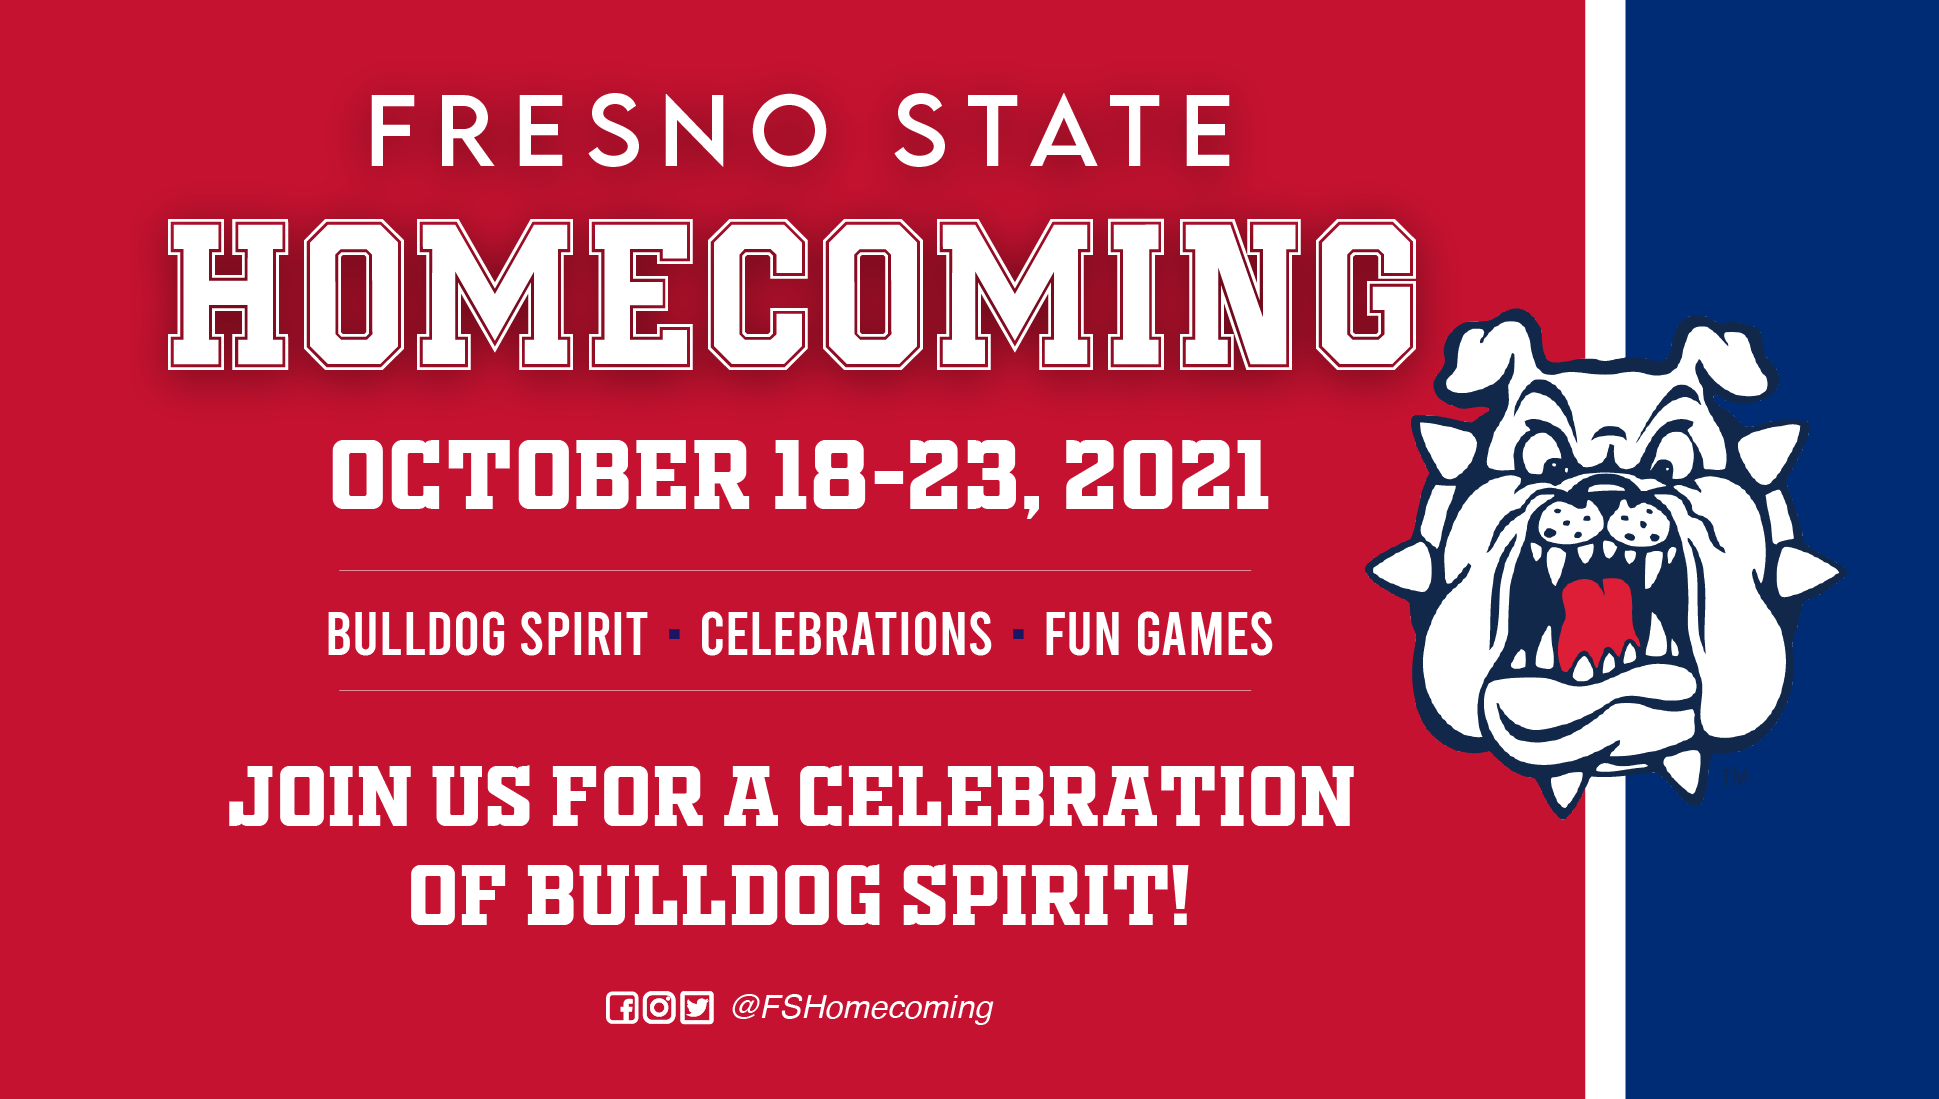 Fresno State Homecoming October 18-23, 2021, Bulldog Spirit, Celebrations, Fun Games, Join us for a celebration of Bulldog Spirit! @FSHomecoming